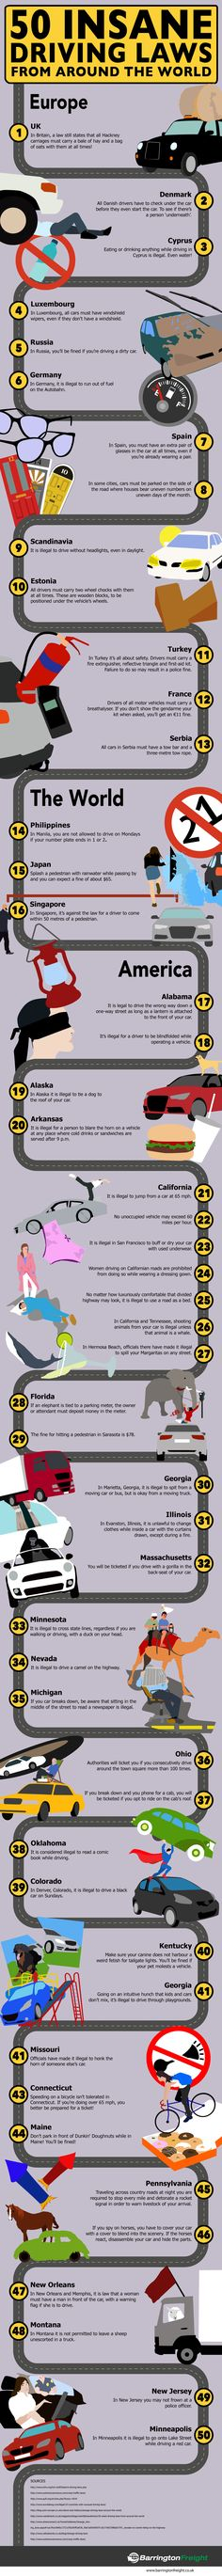 50 Insane Laws2 50 Insane Driving Laws From Around The World